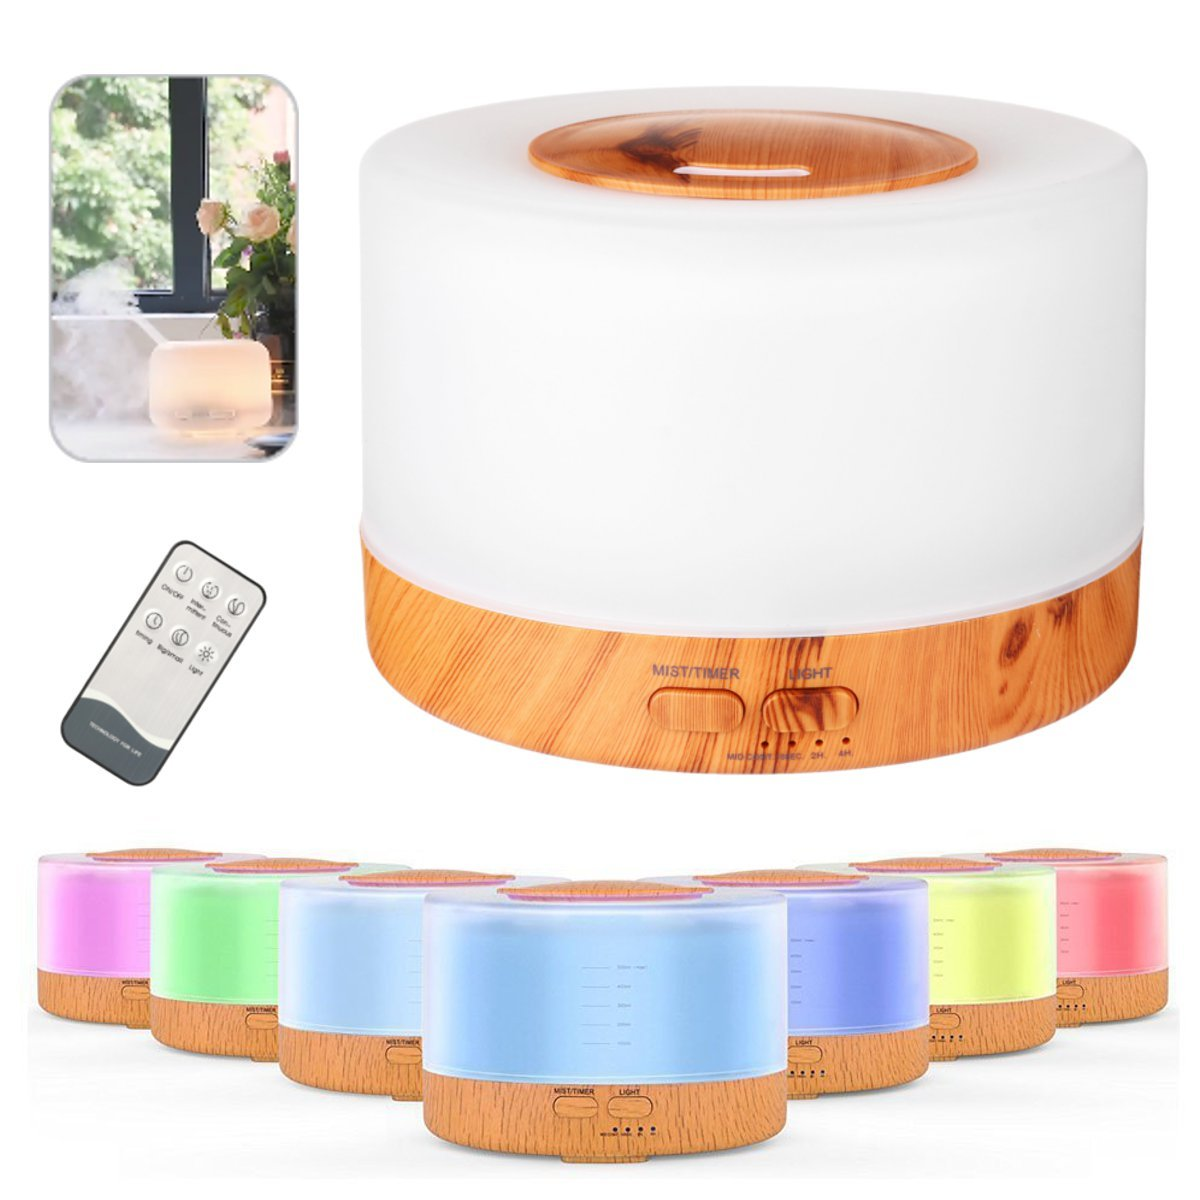 500ml Air Humidifier Essential Oil Diffuser Aroma Lamp Aromatherapy Aroma Diffuser Mist Maker